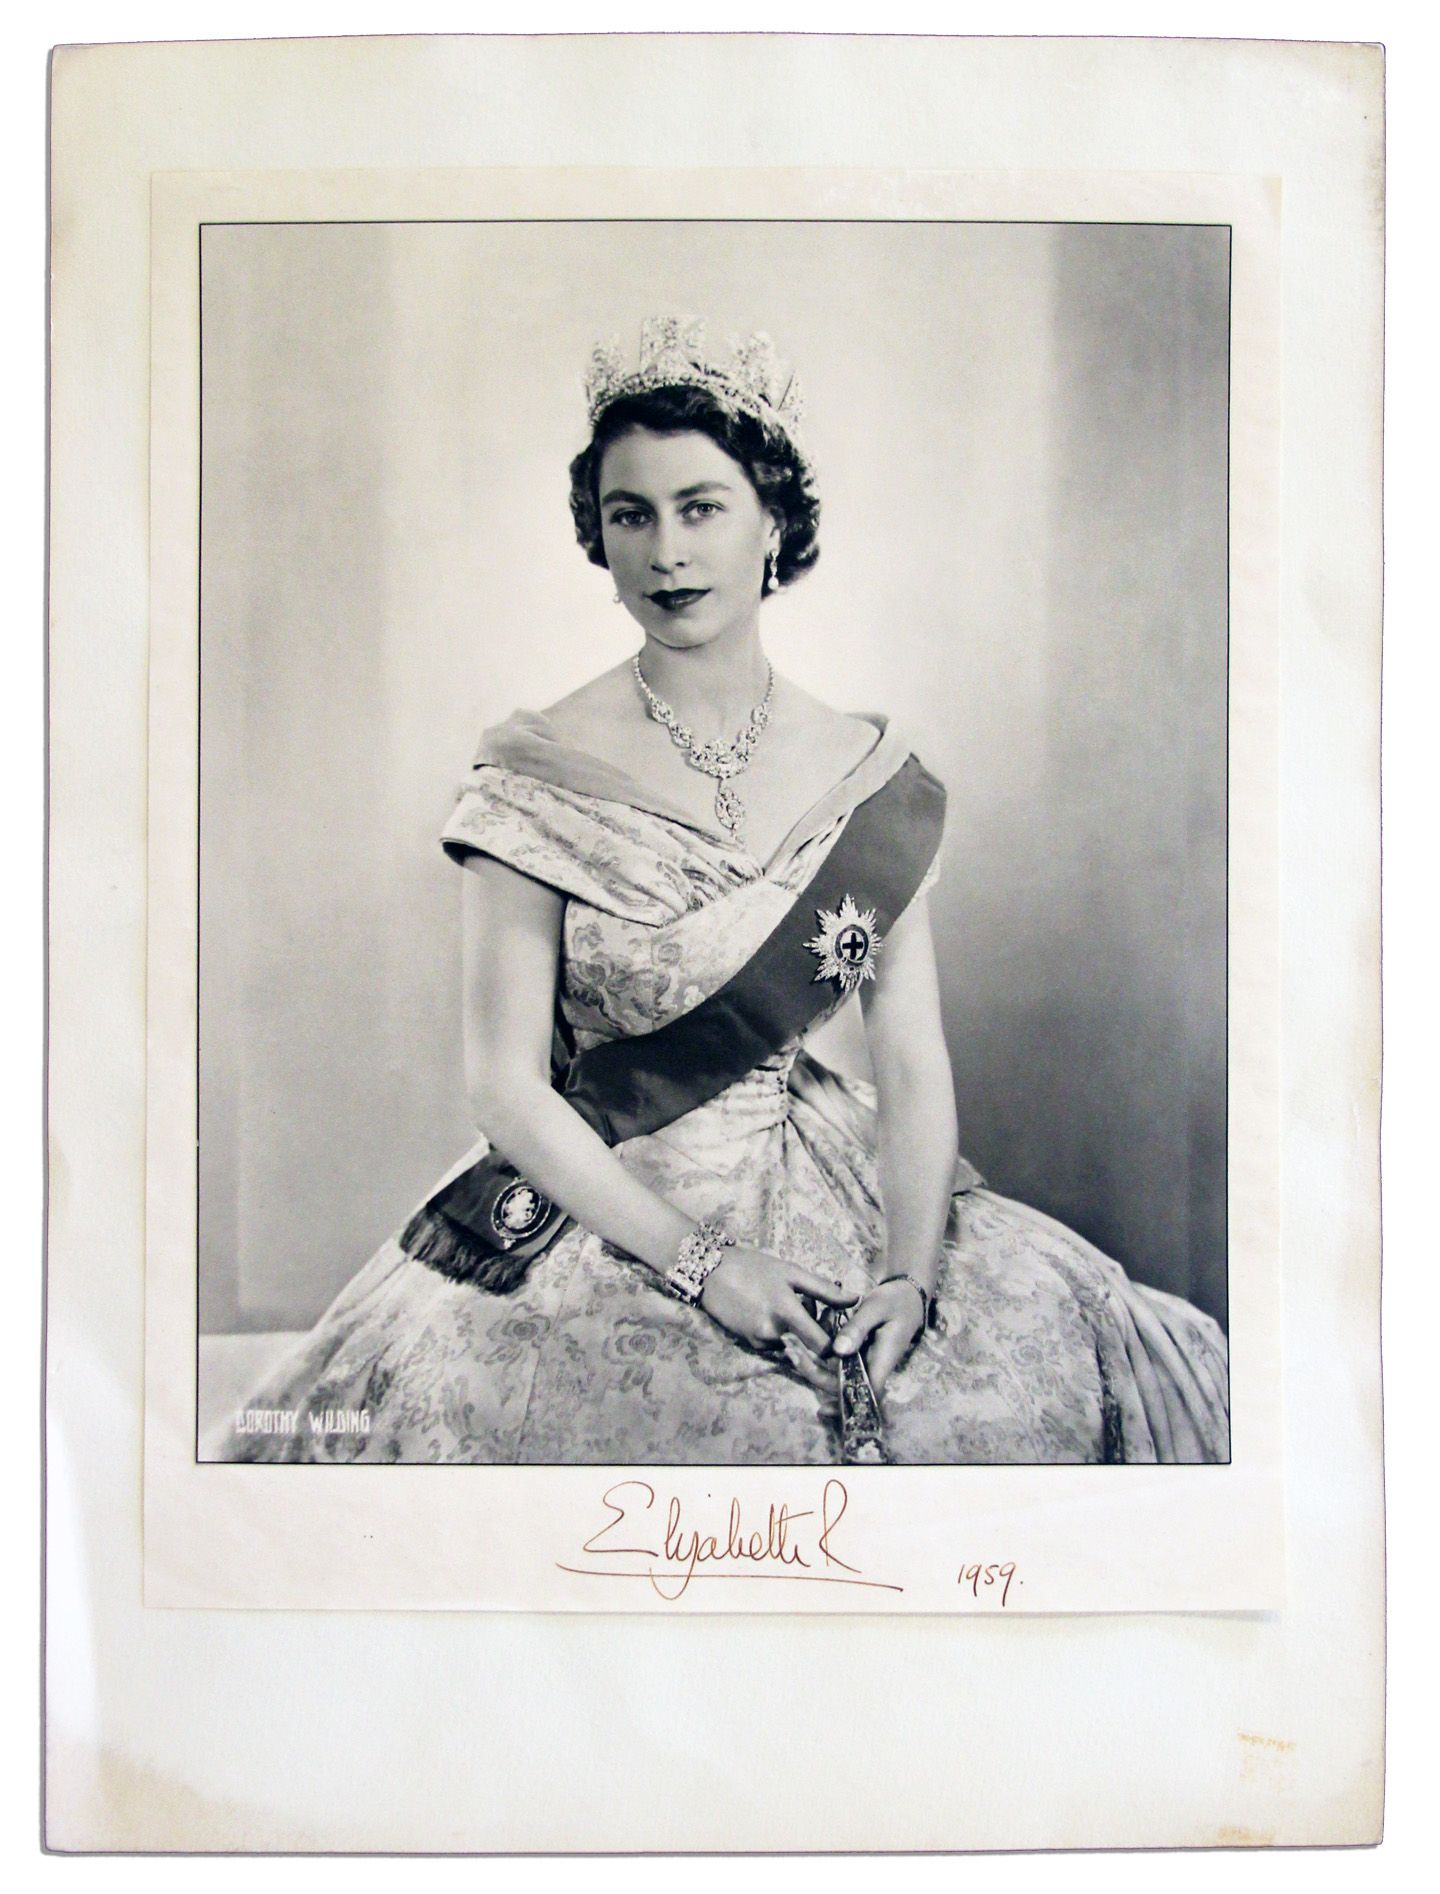 lot detail queen elizabeth s official coronation photo signed in 1959 official coronation photo signed in 1959